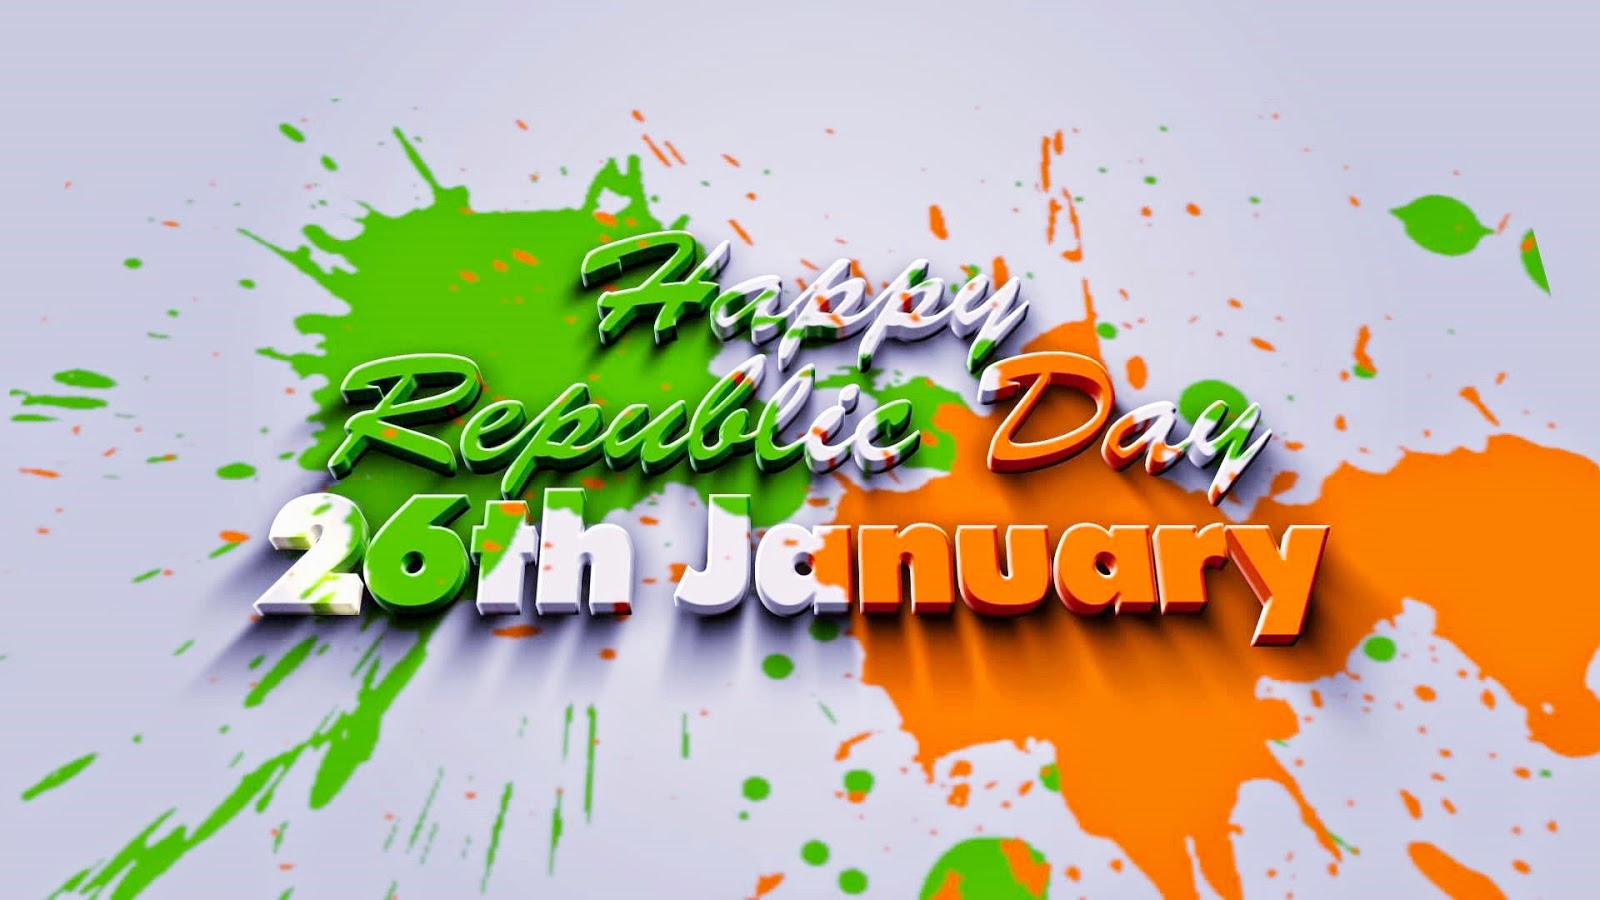 2015 Republic Day of India, Happy Repubic Day 2015 Quotes, happy republic day SMS, republic day SMS, republic day 140 char msgs,